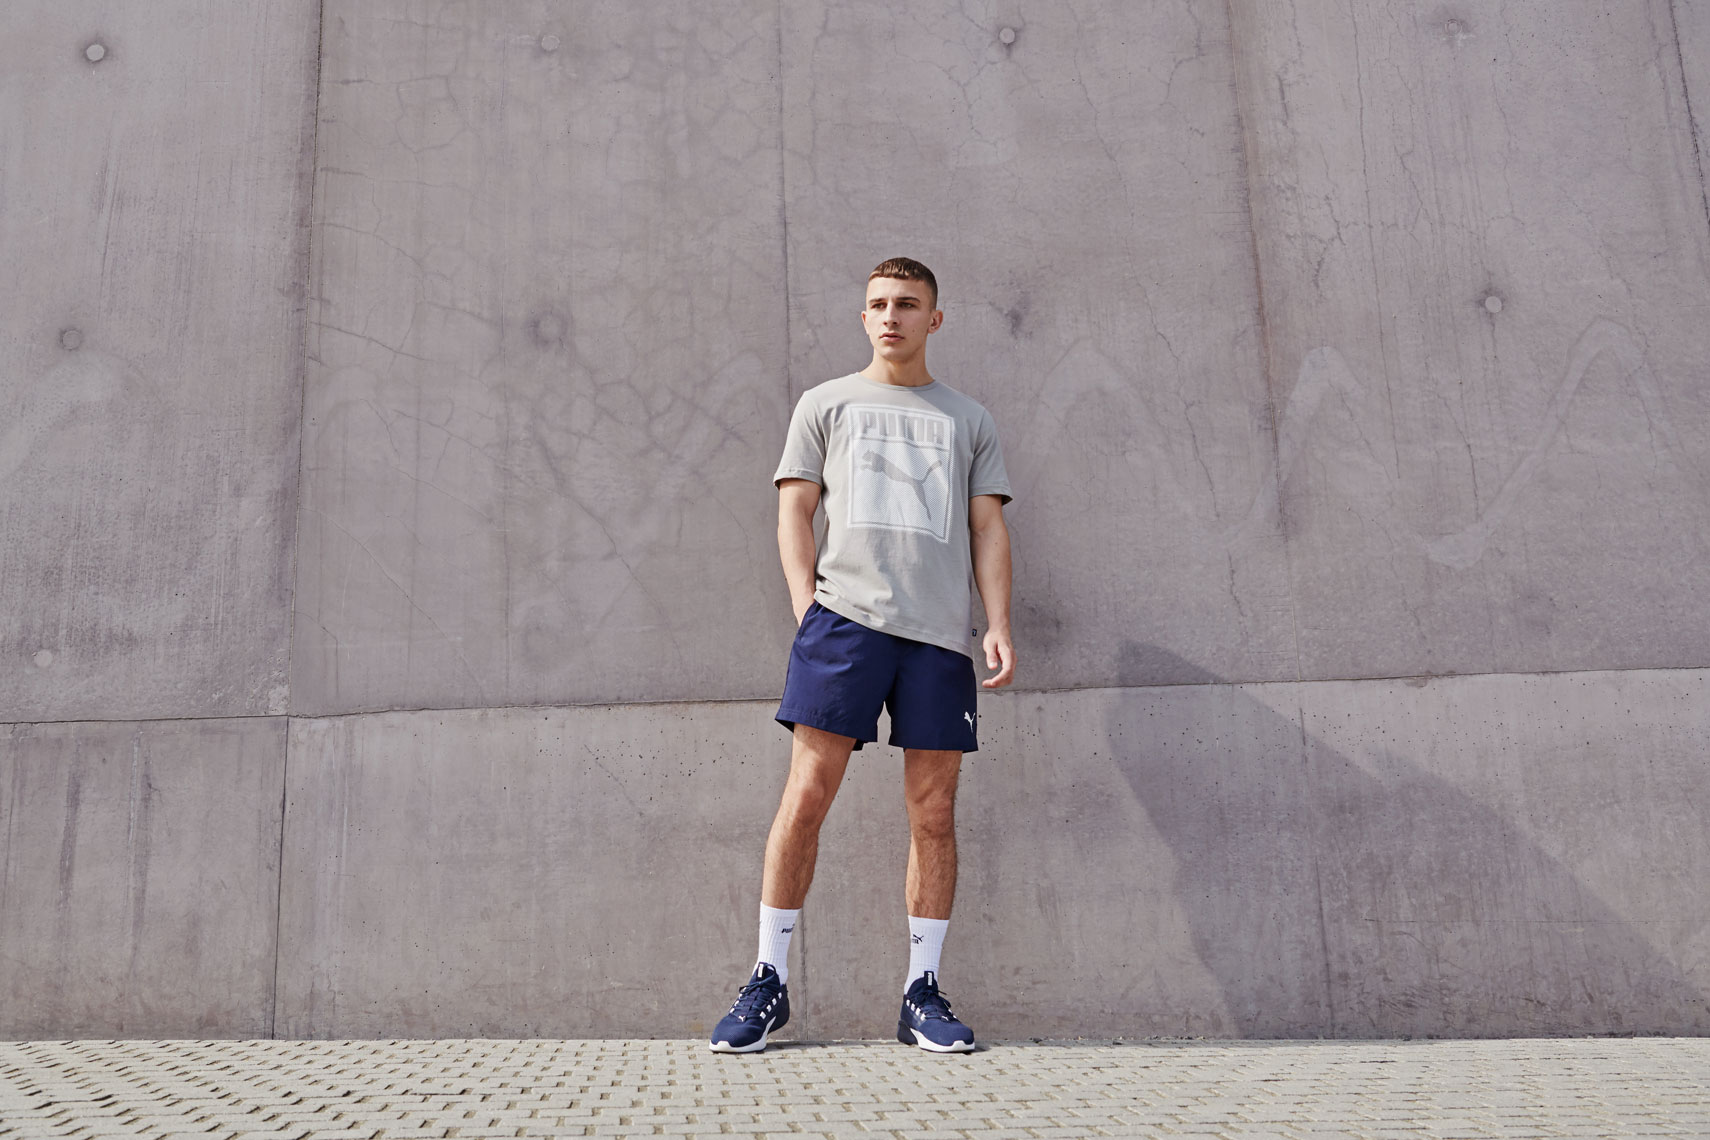 issie-gibbons-fashion-stylist-puma-campaign-sports-direct-menswear-shorts